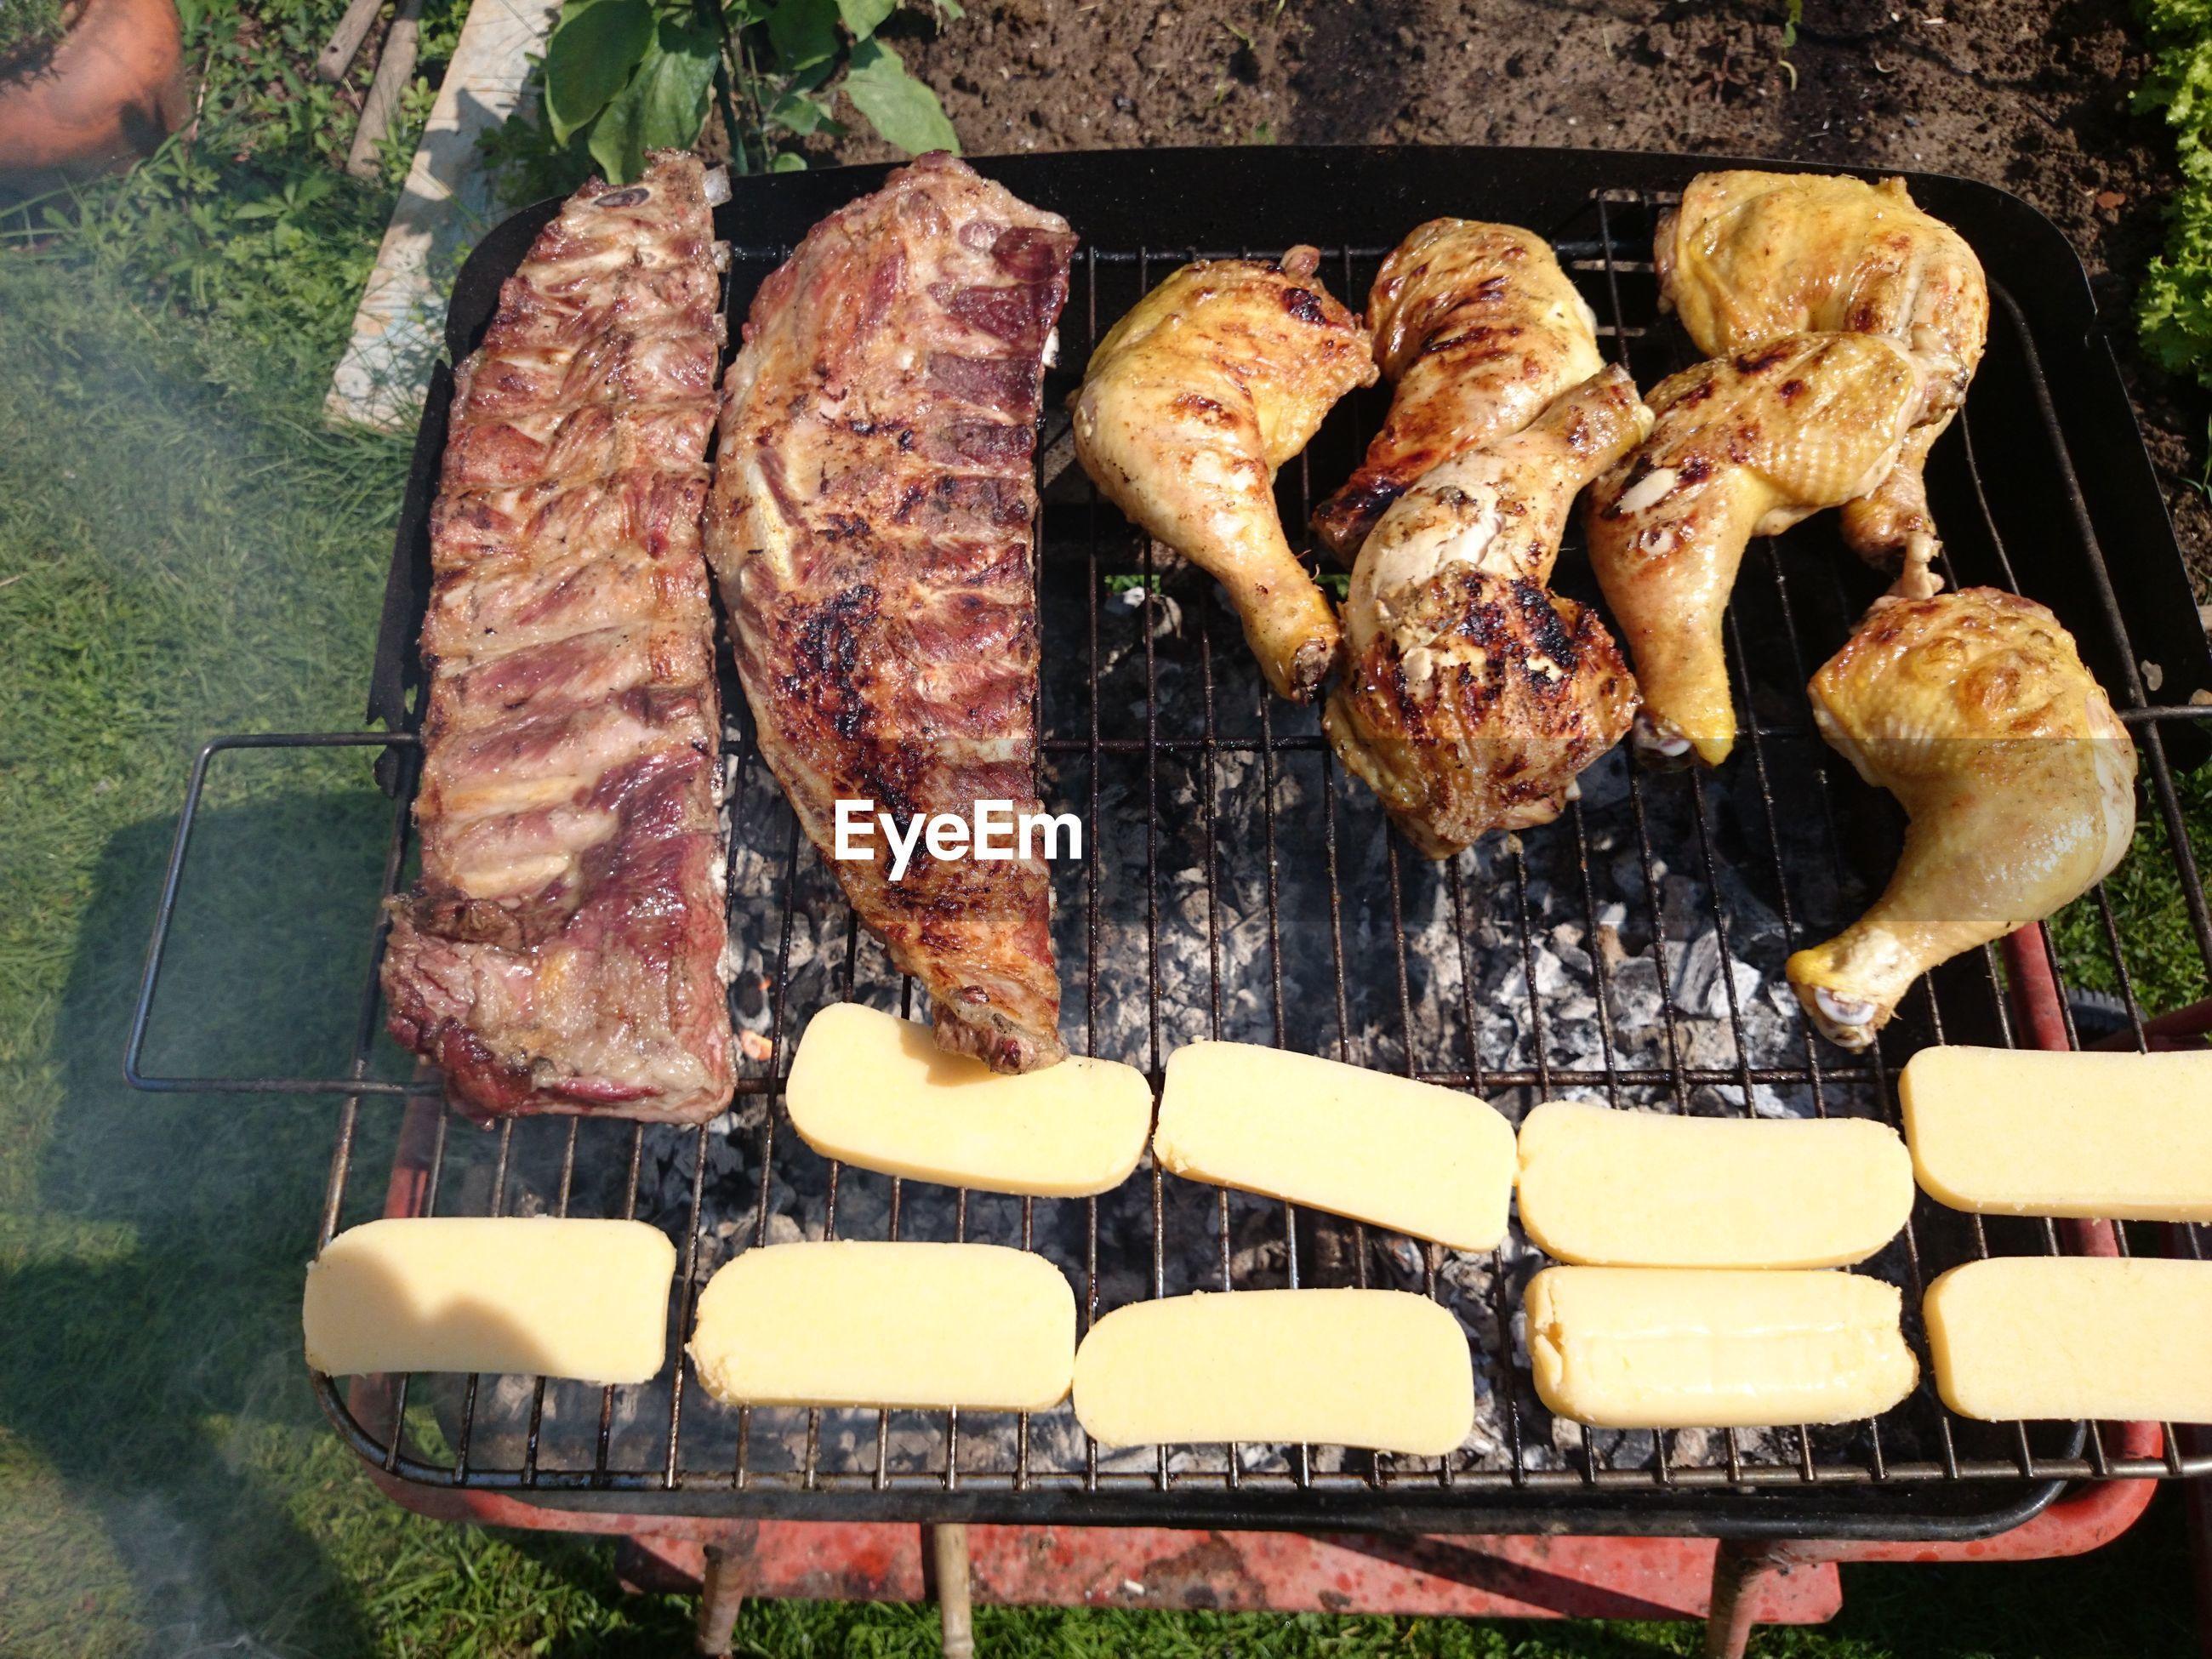 Meat on barbeque grill